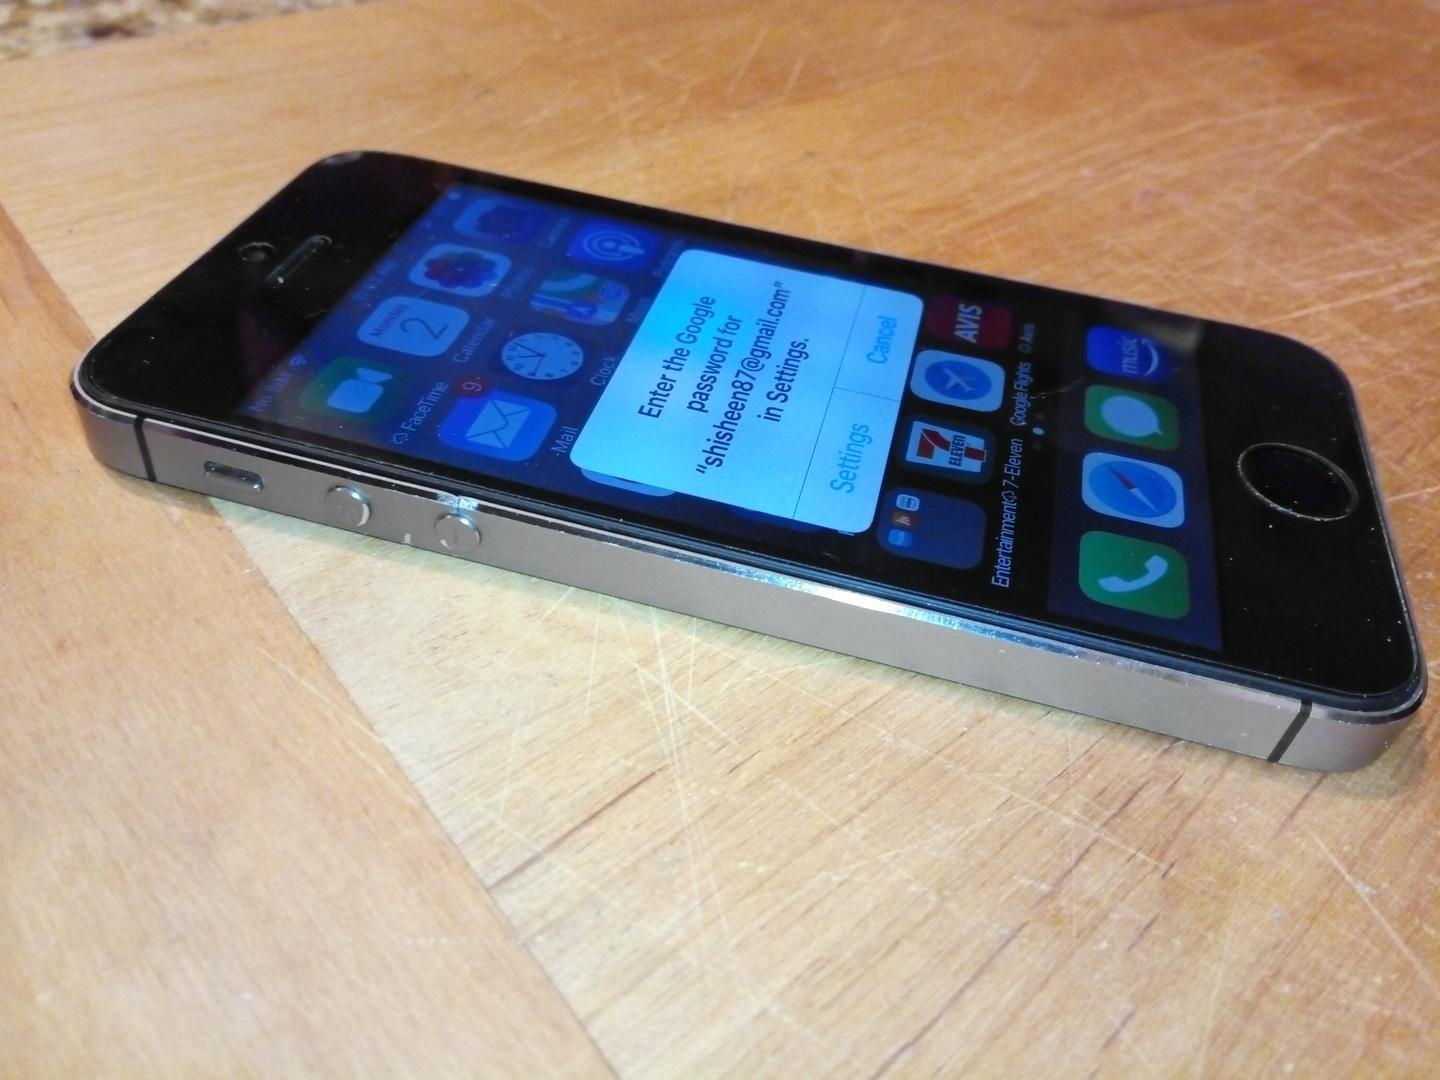 iphone5s mp4分辨率_Apple iPhone 5S (Unlocked) [A1453] - Gray, 16 GB in Seattle-Tacoma - LTMJ27841 - Swappa